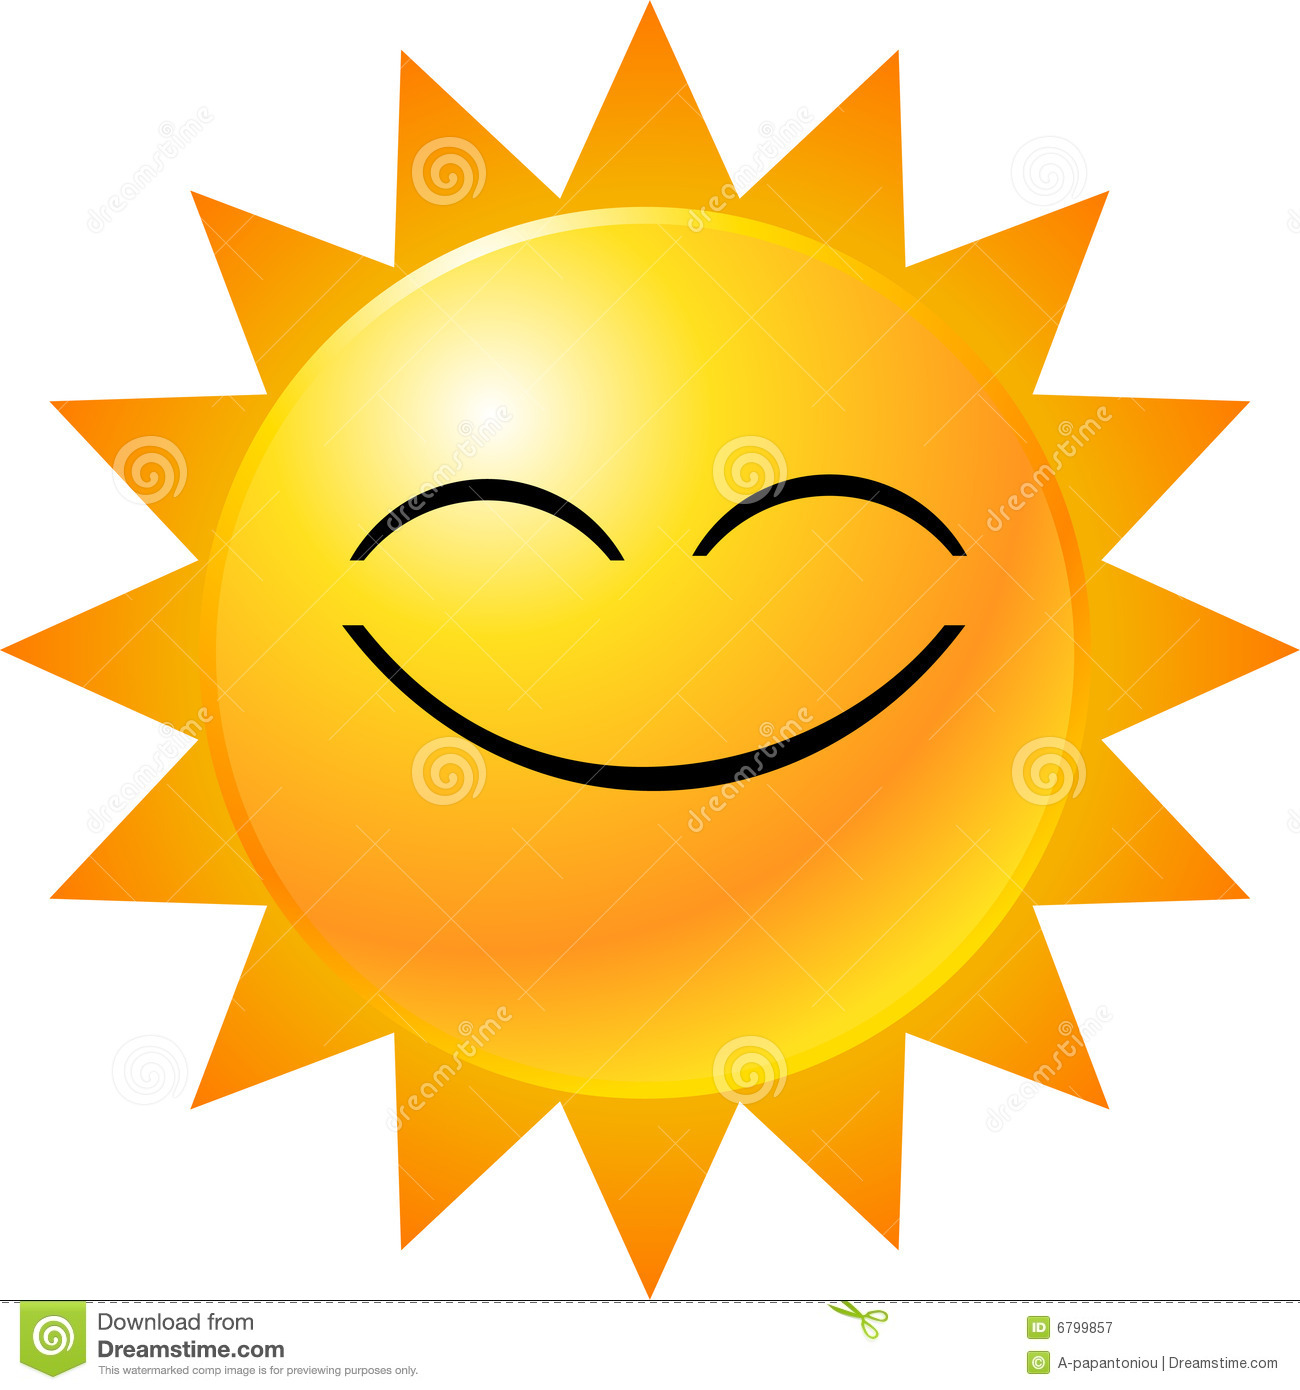 Emoticon Smiley Face Royalty Free Stock Photography - Image: 6799857